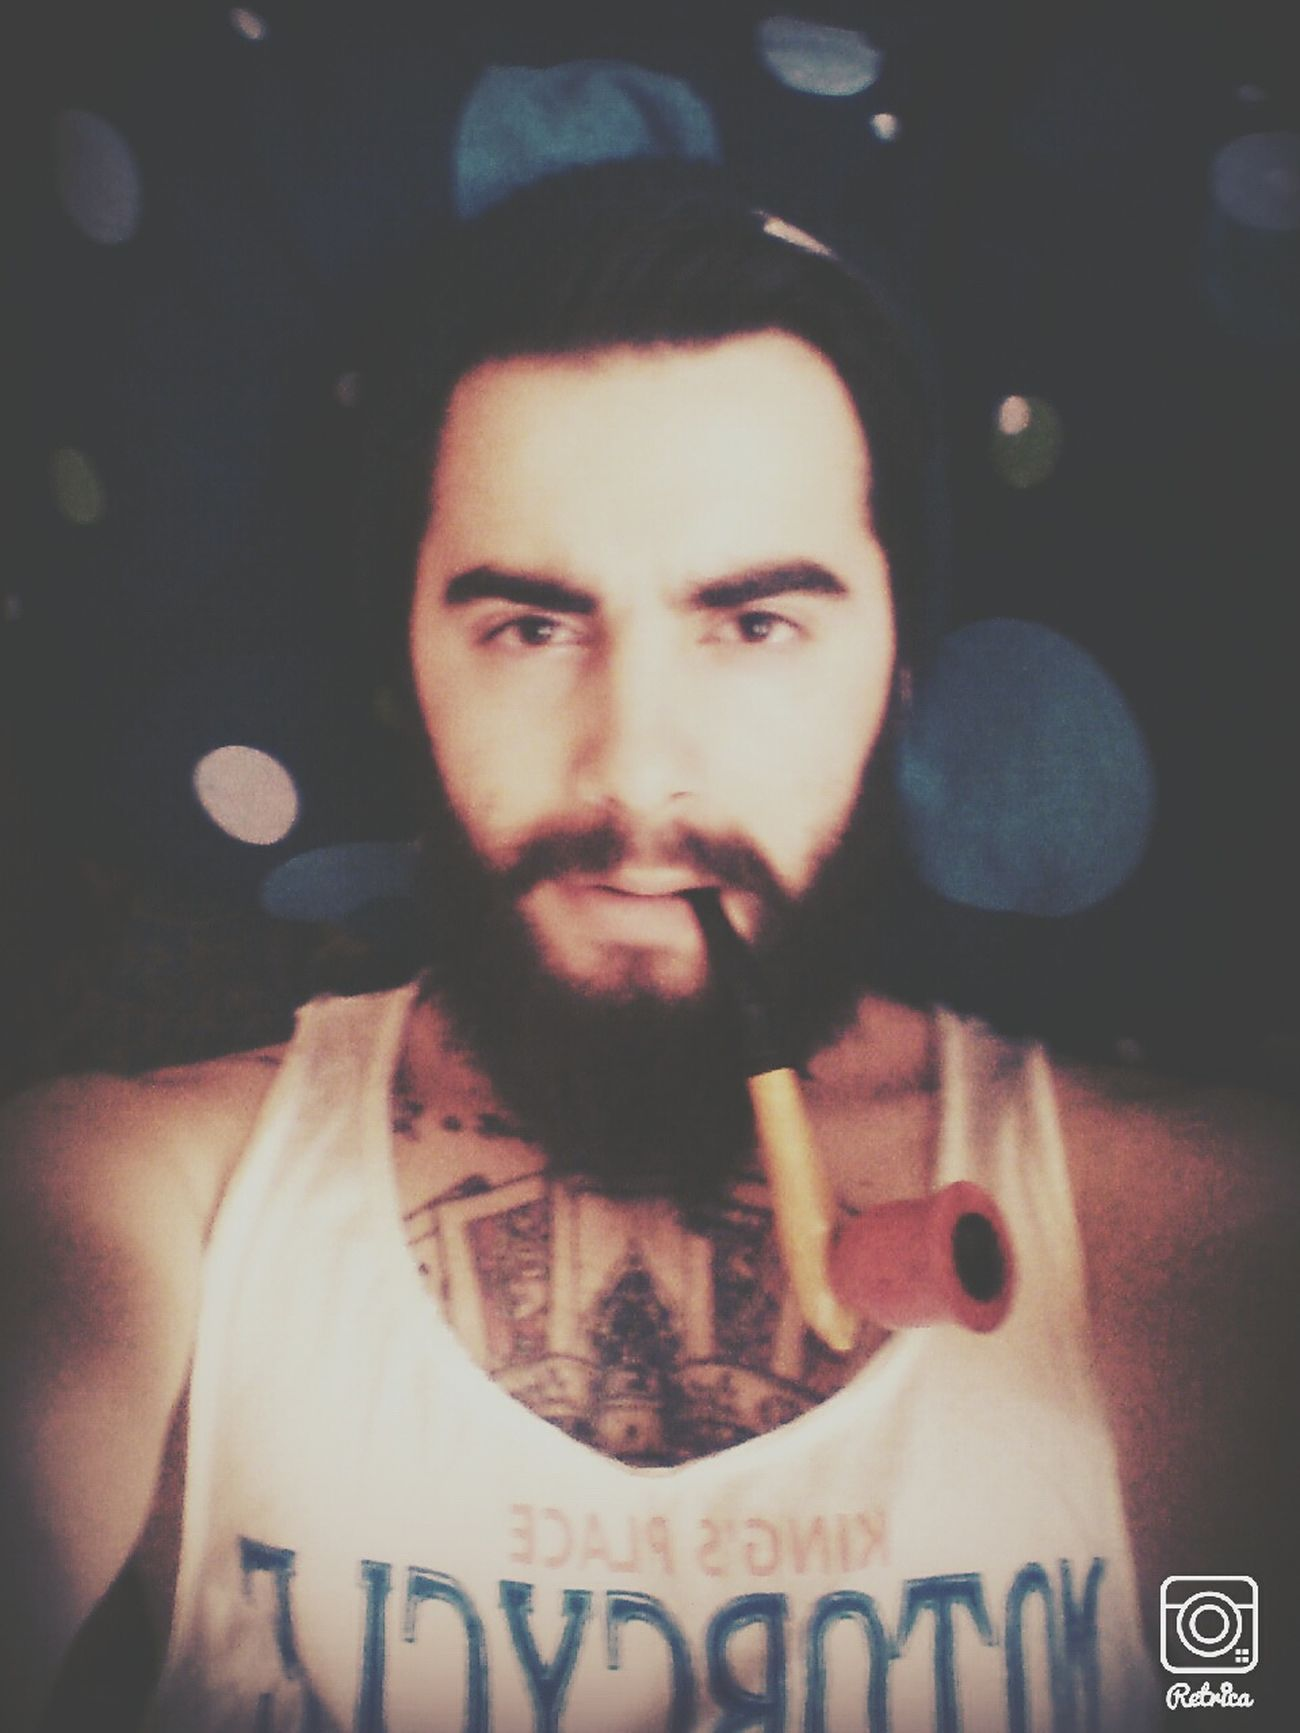 Tattoo Today's Hot Look Taking Photos Hello World Good Morning Beard Pipo Weed Self Portrait Light And Shadow